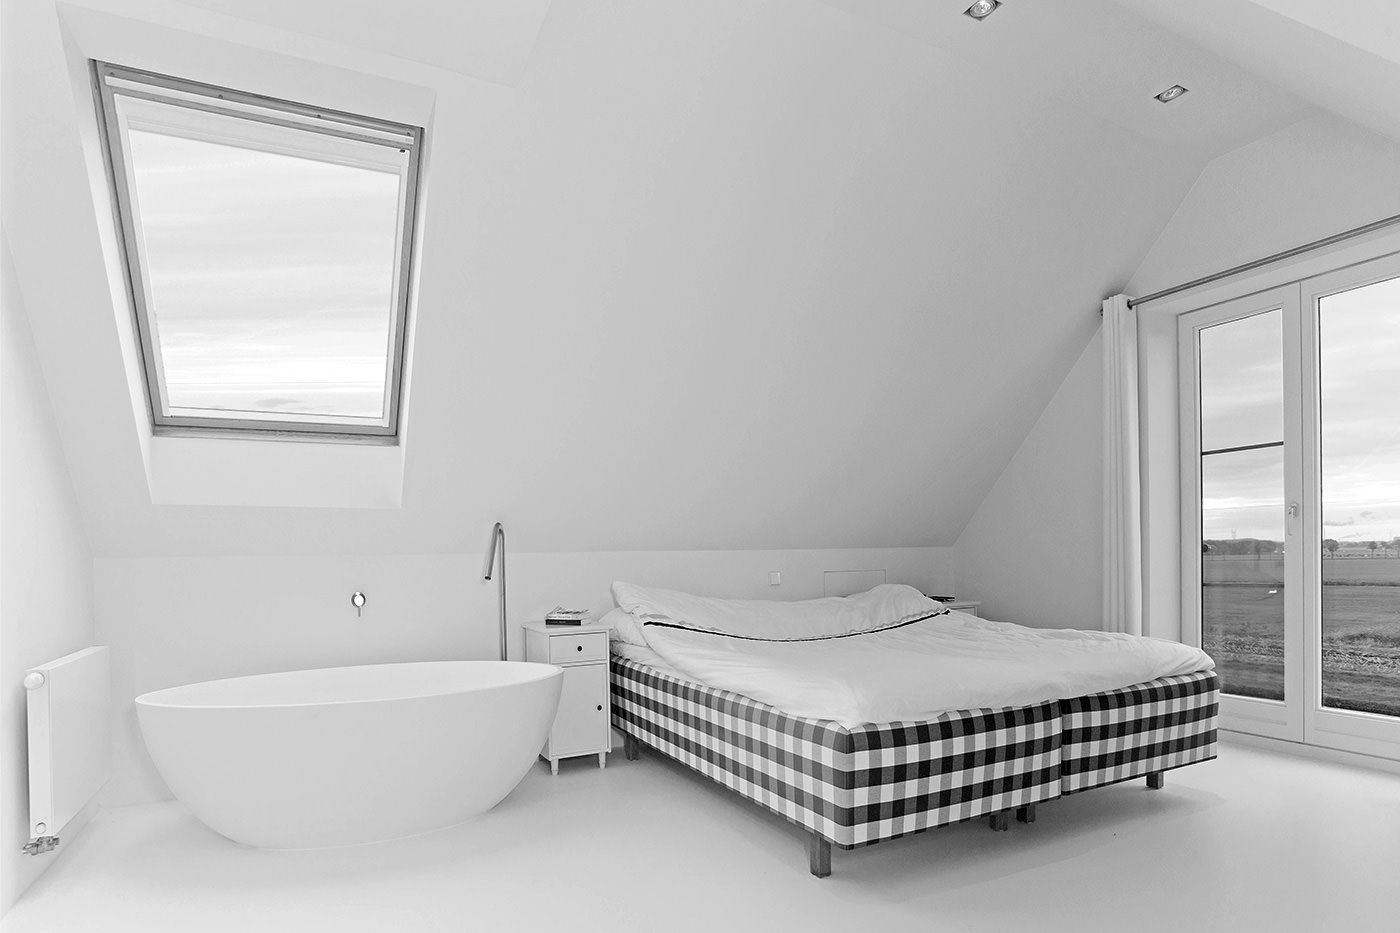 Cocoon-bath-in-bedroombad-ensuite-bathroom-freestanding-bath-tub-hastens-bed-and-bathroom